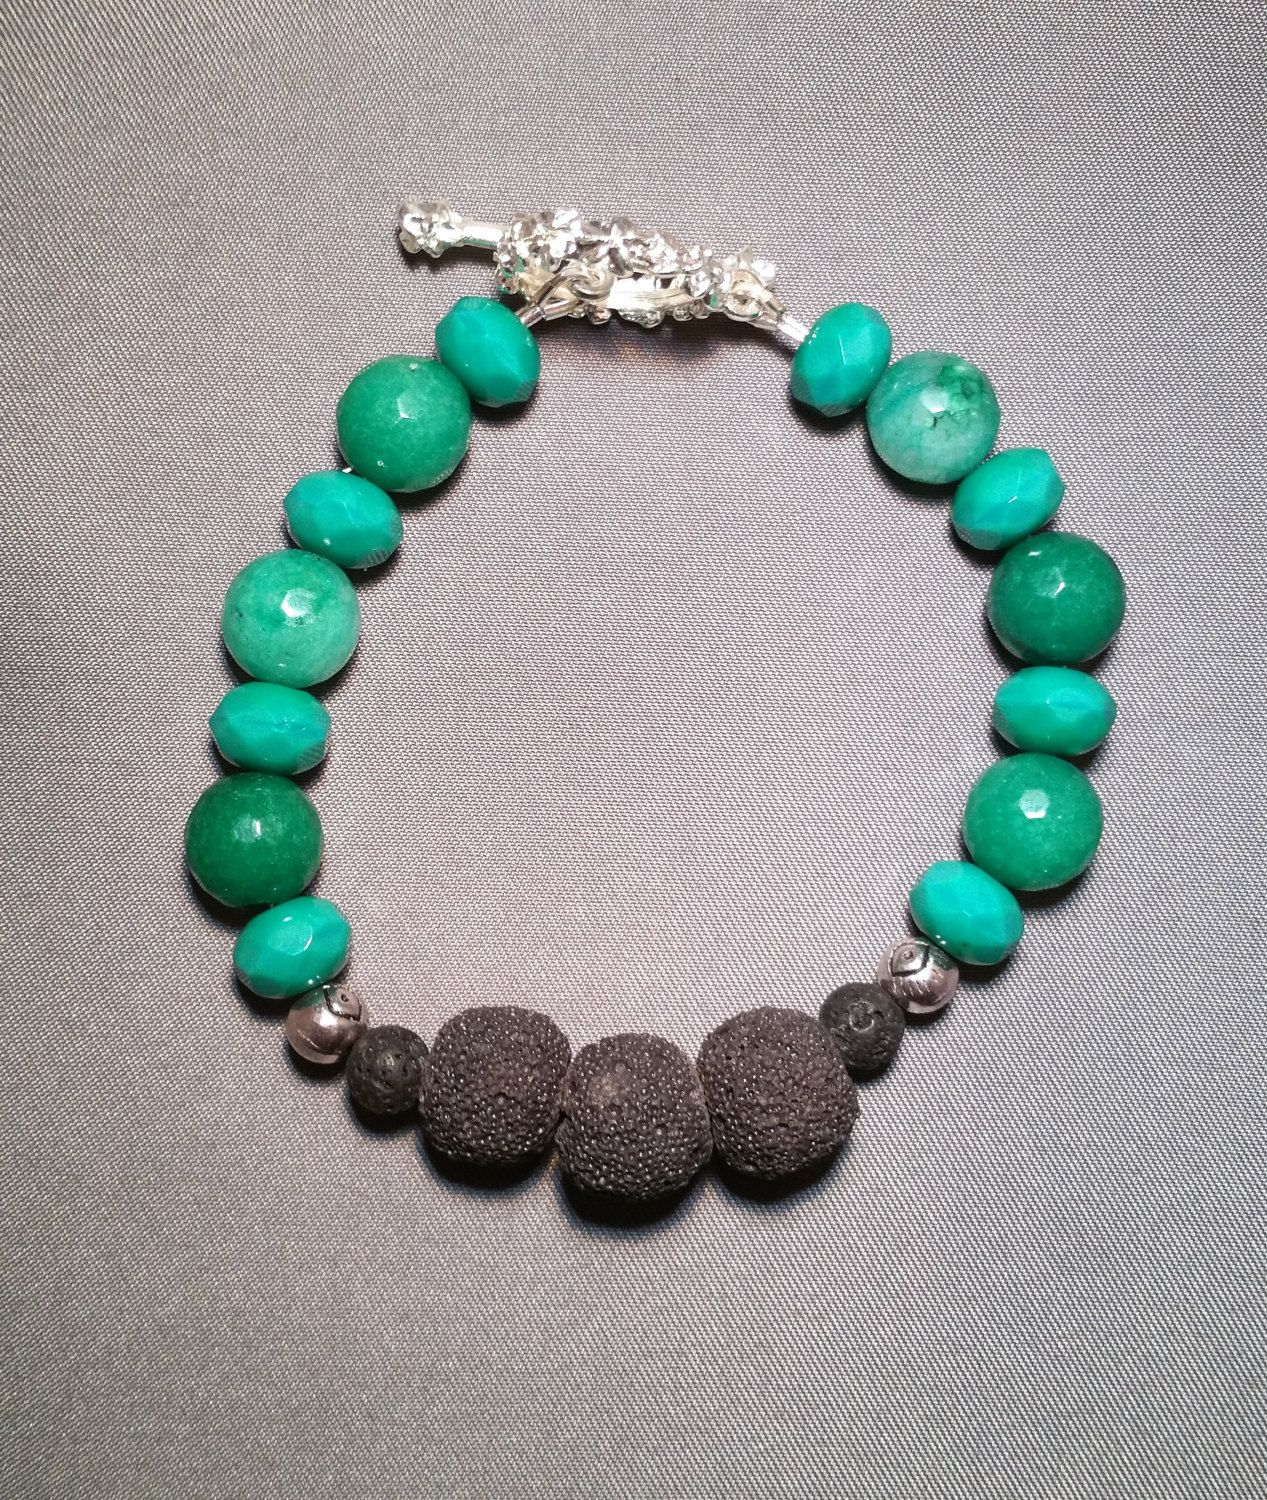 Teal Green Apatite Black Lava Bead Diffuser Bracelet for Essential Oils Aromatherapy by NavigatingBeauty on Etsy